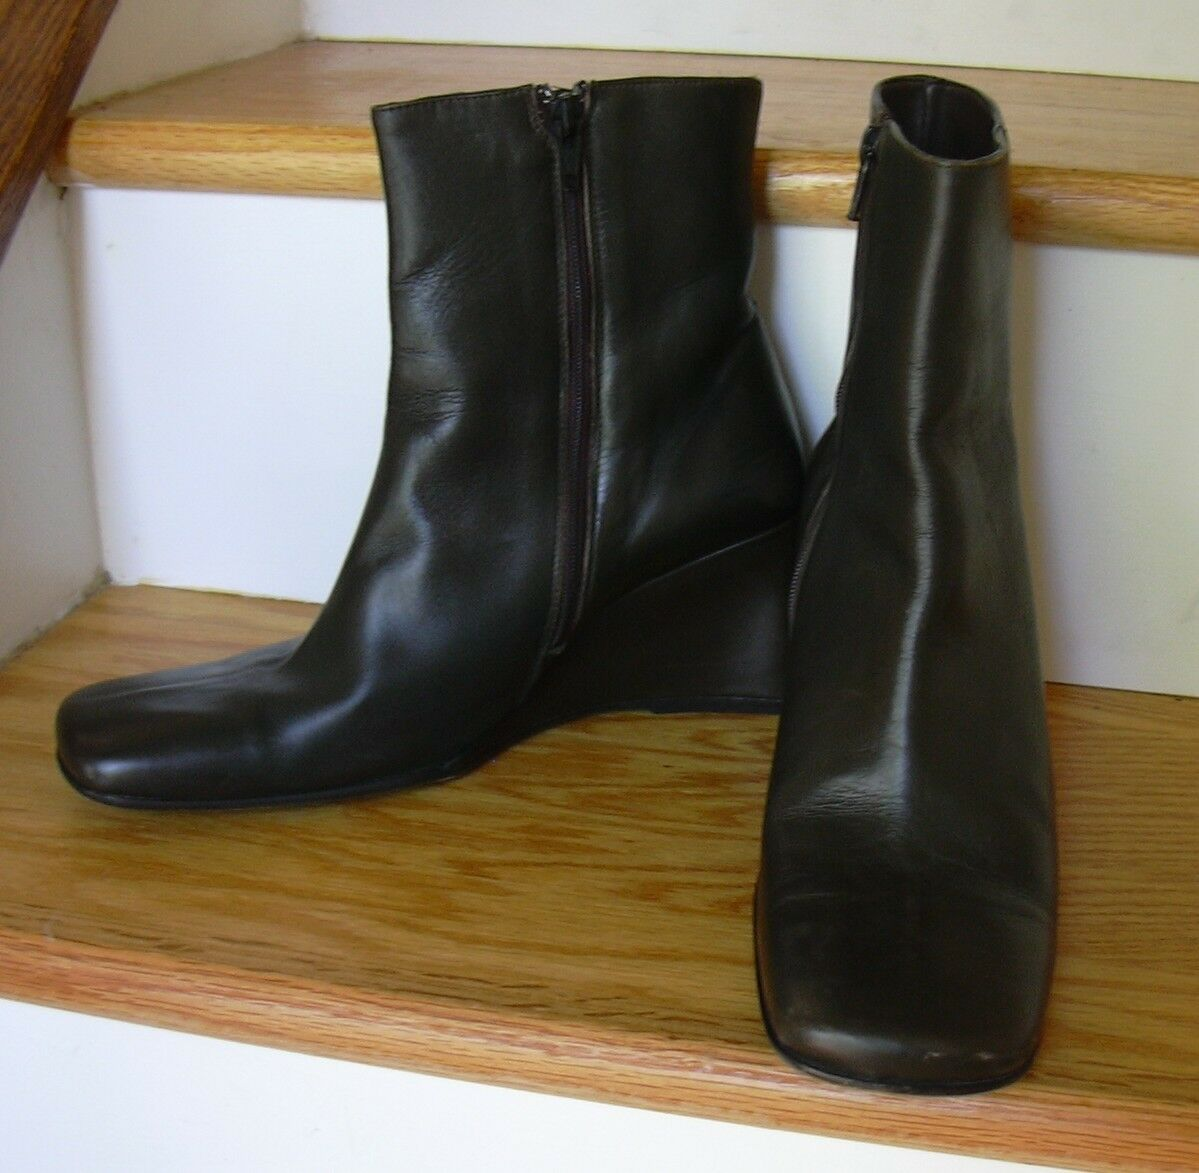 Banana Republic Dark Green Leather Ankle Boots Womens 8.5 Wedge Heels 3